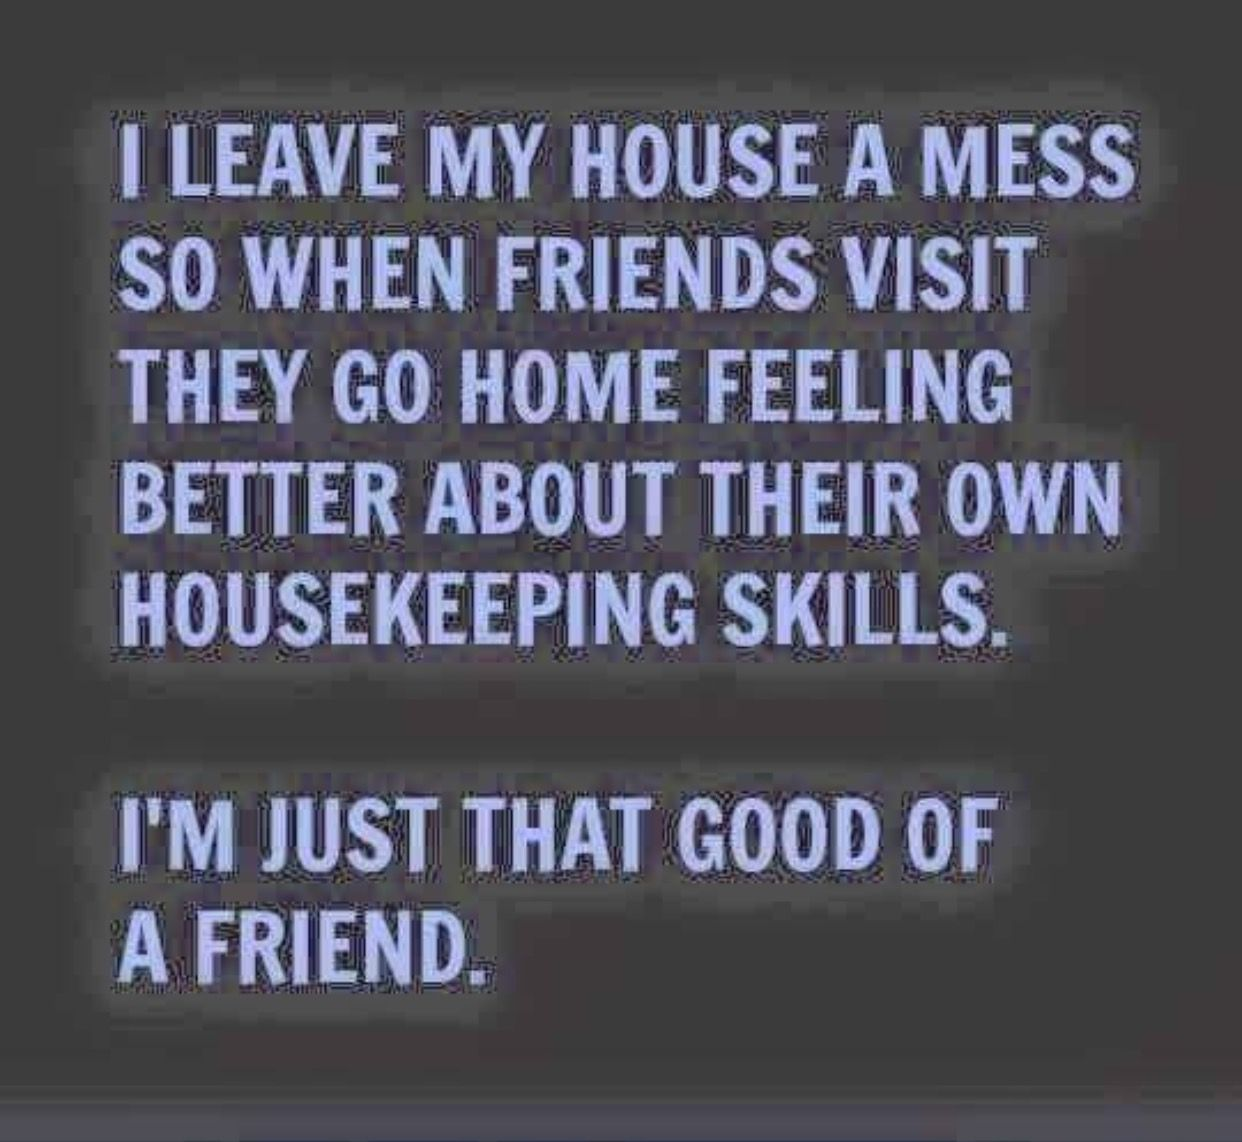 Housekeeping Quotes I Leave My House A Mess So When Friends Visit They Go Home Feeling